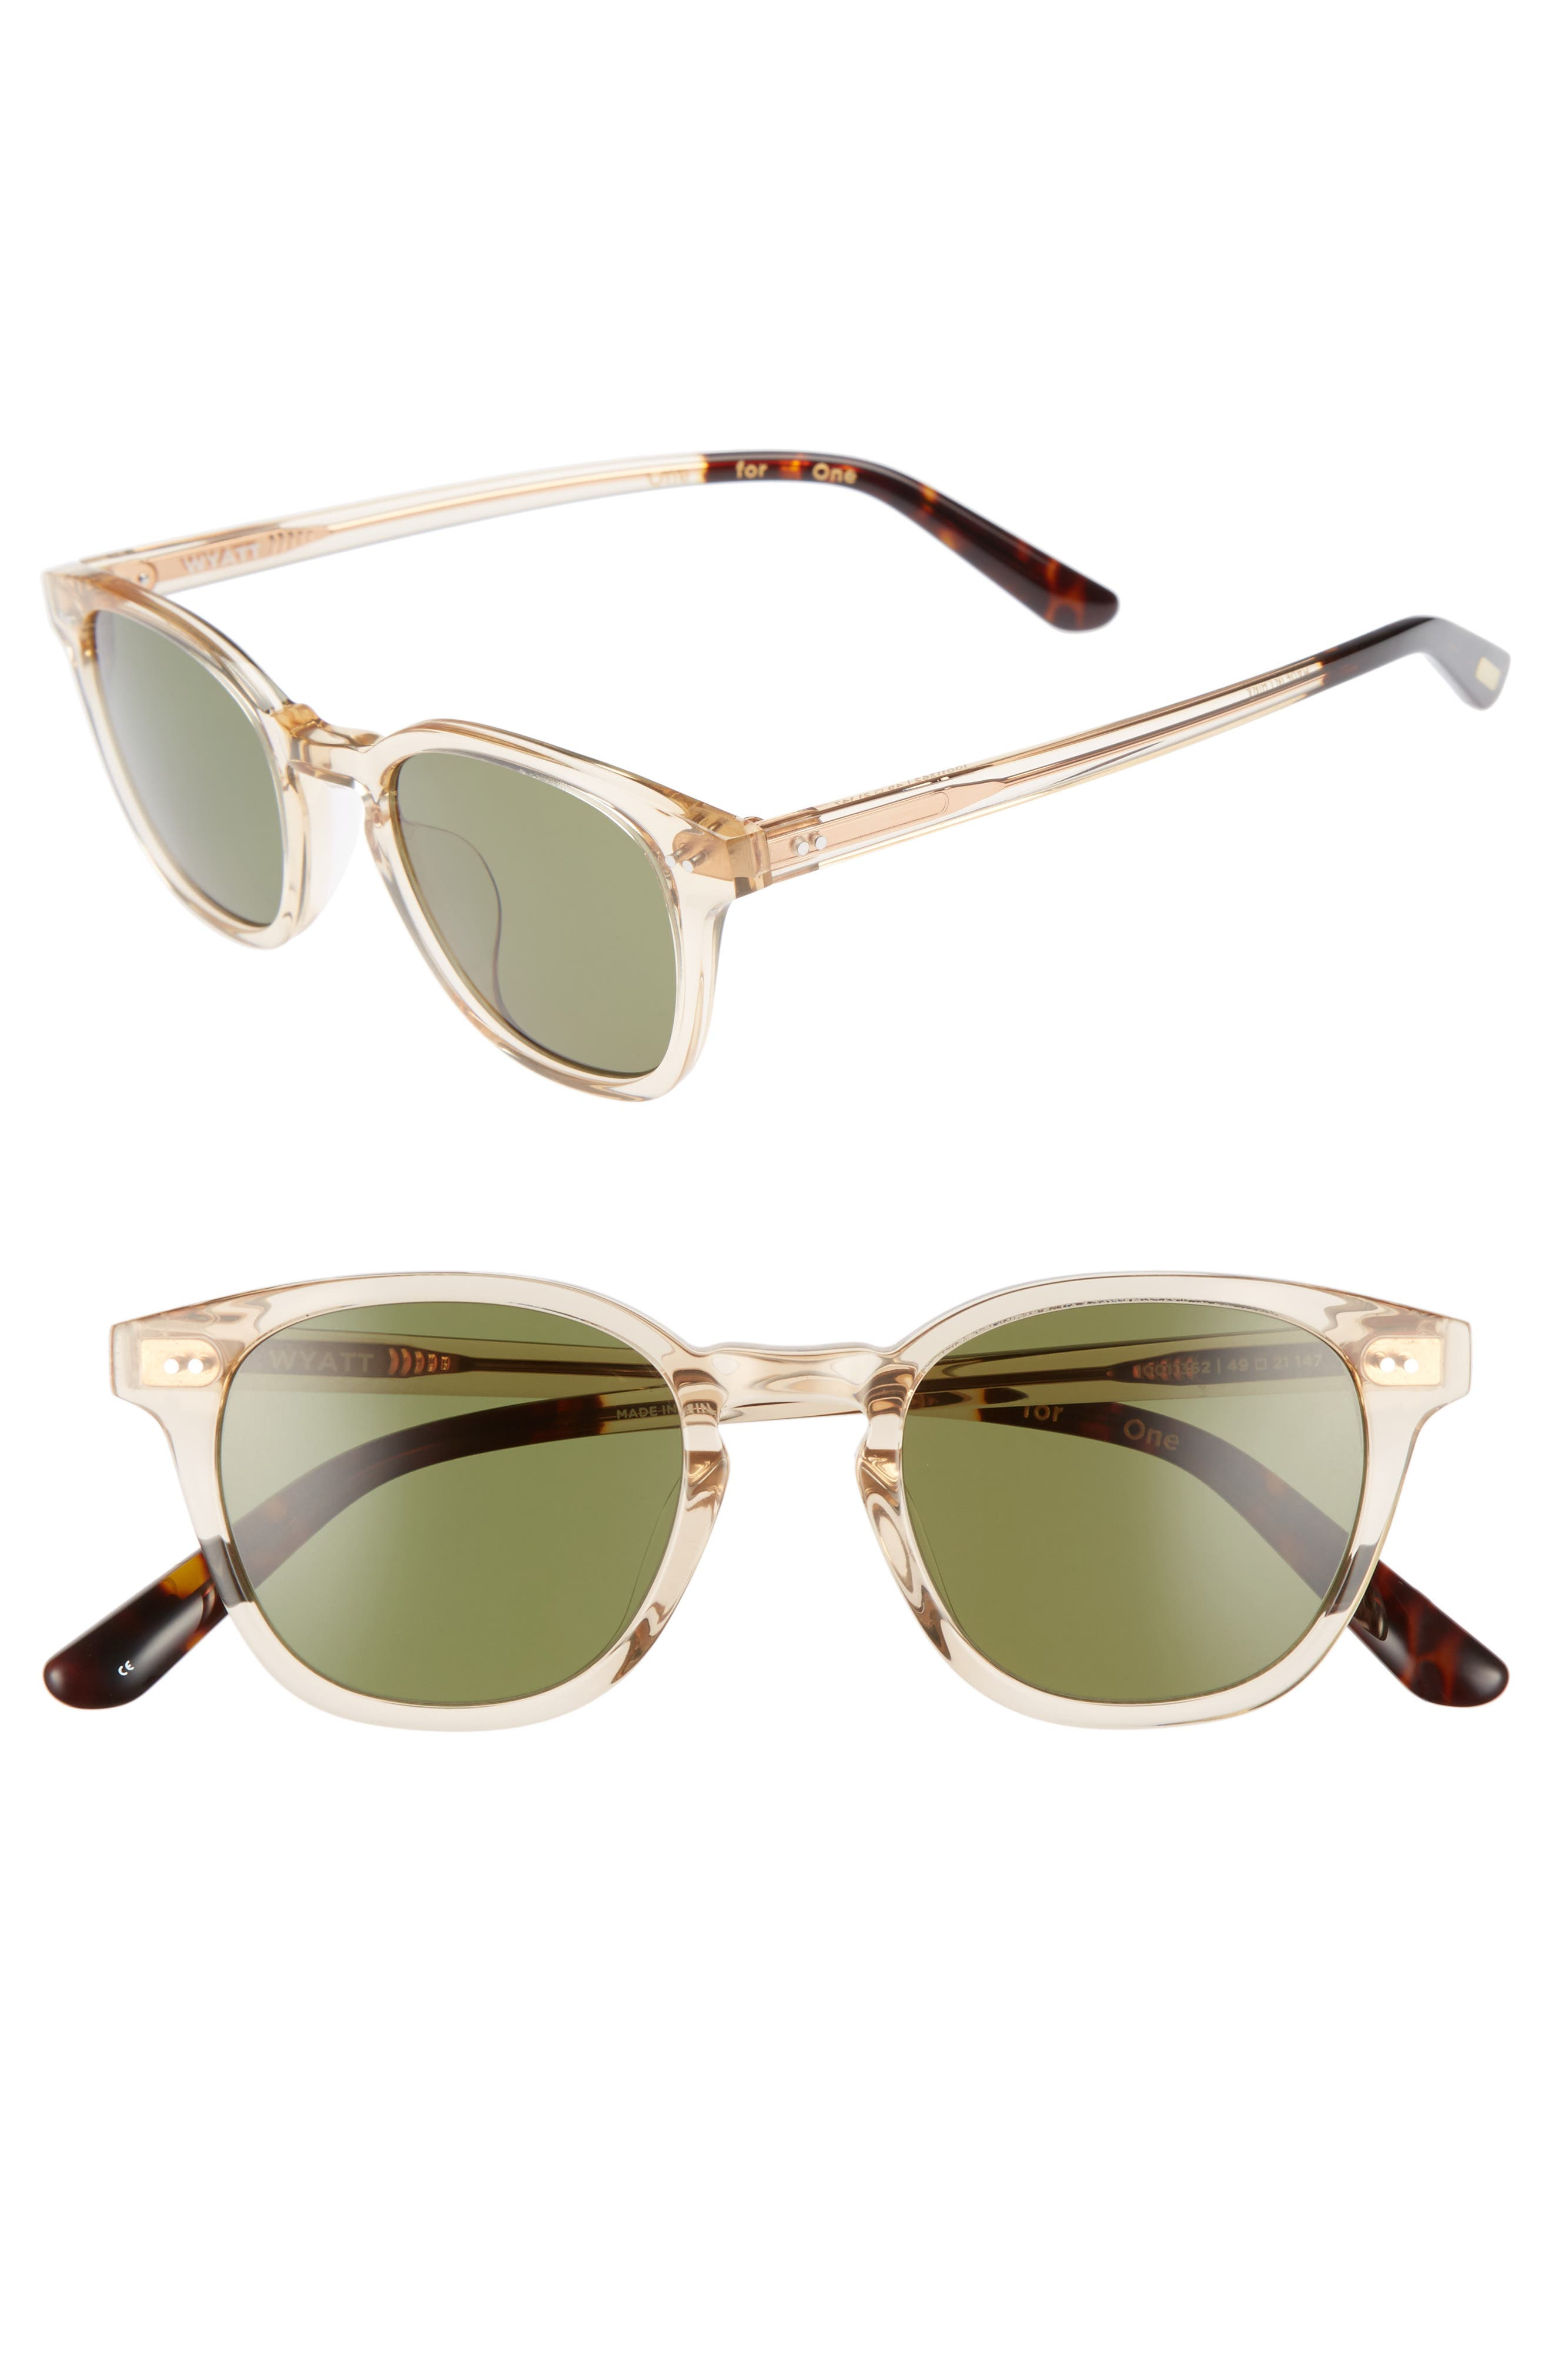 Wyatt 49mm Sunglasses,                         Main,                         color, 100